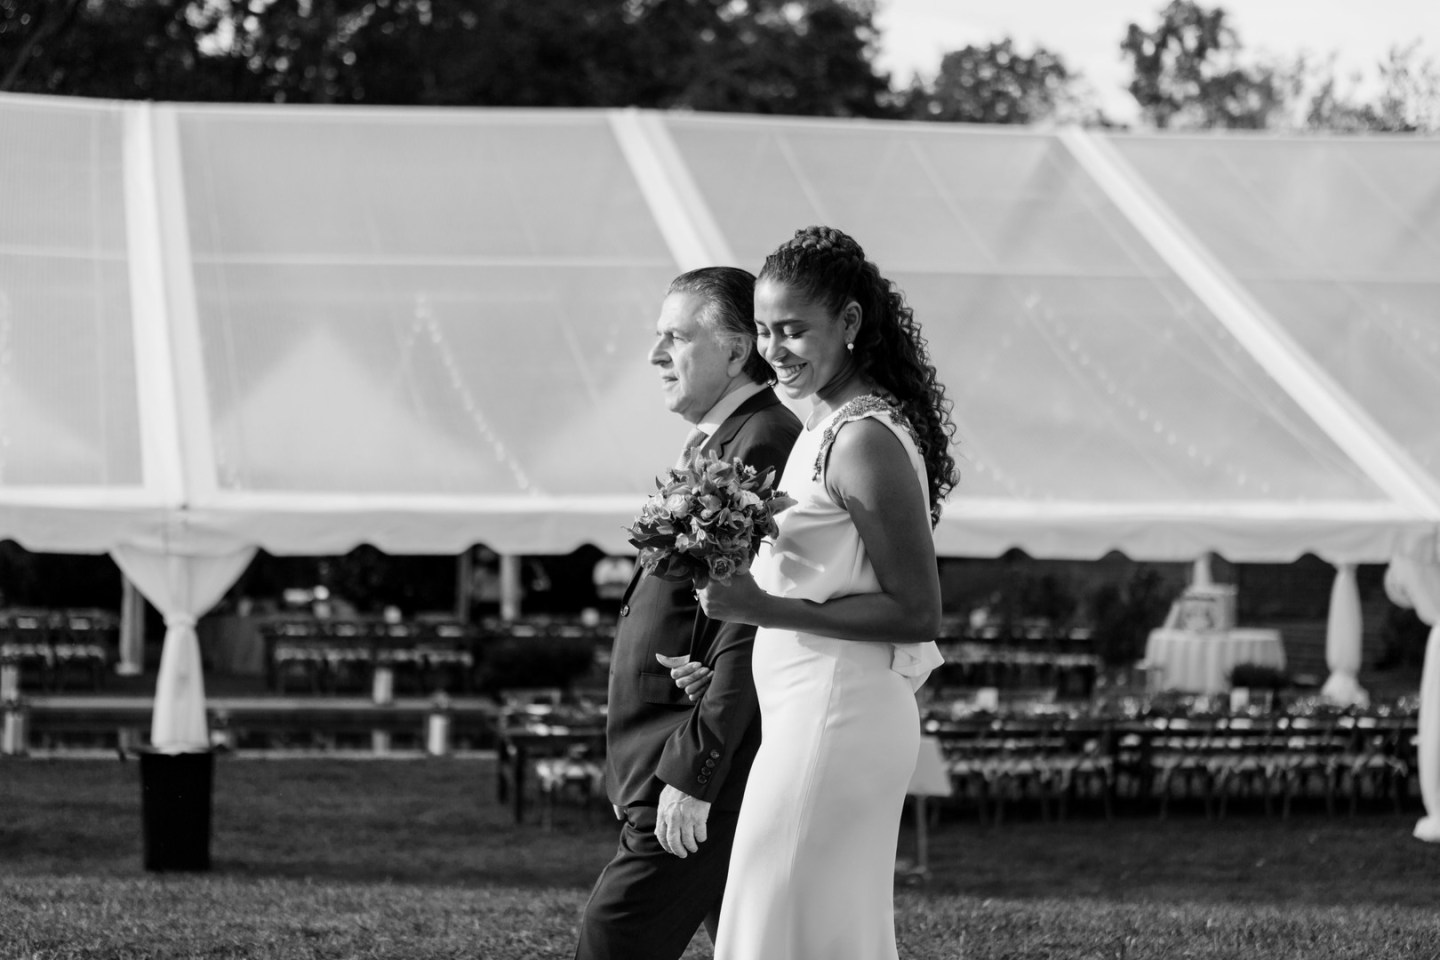 fykjd6wjgqtykw7cwt80_big-1440x960 Southern Hospitality: Outdoor Nuptials in Thomasville, NC